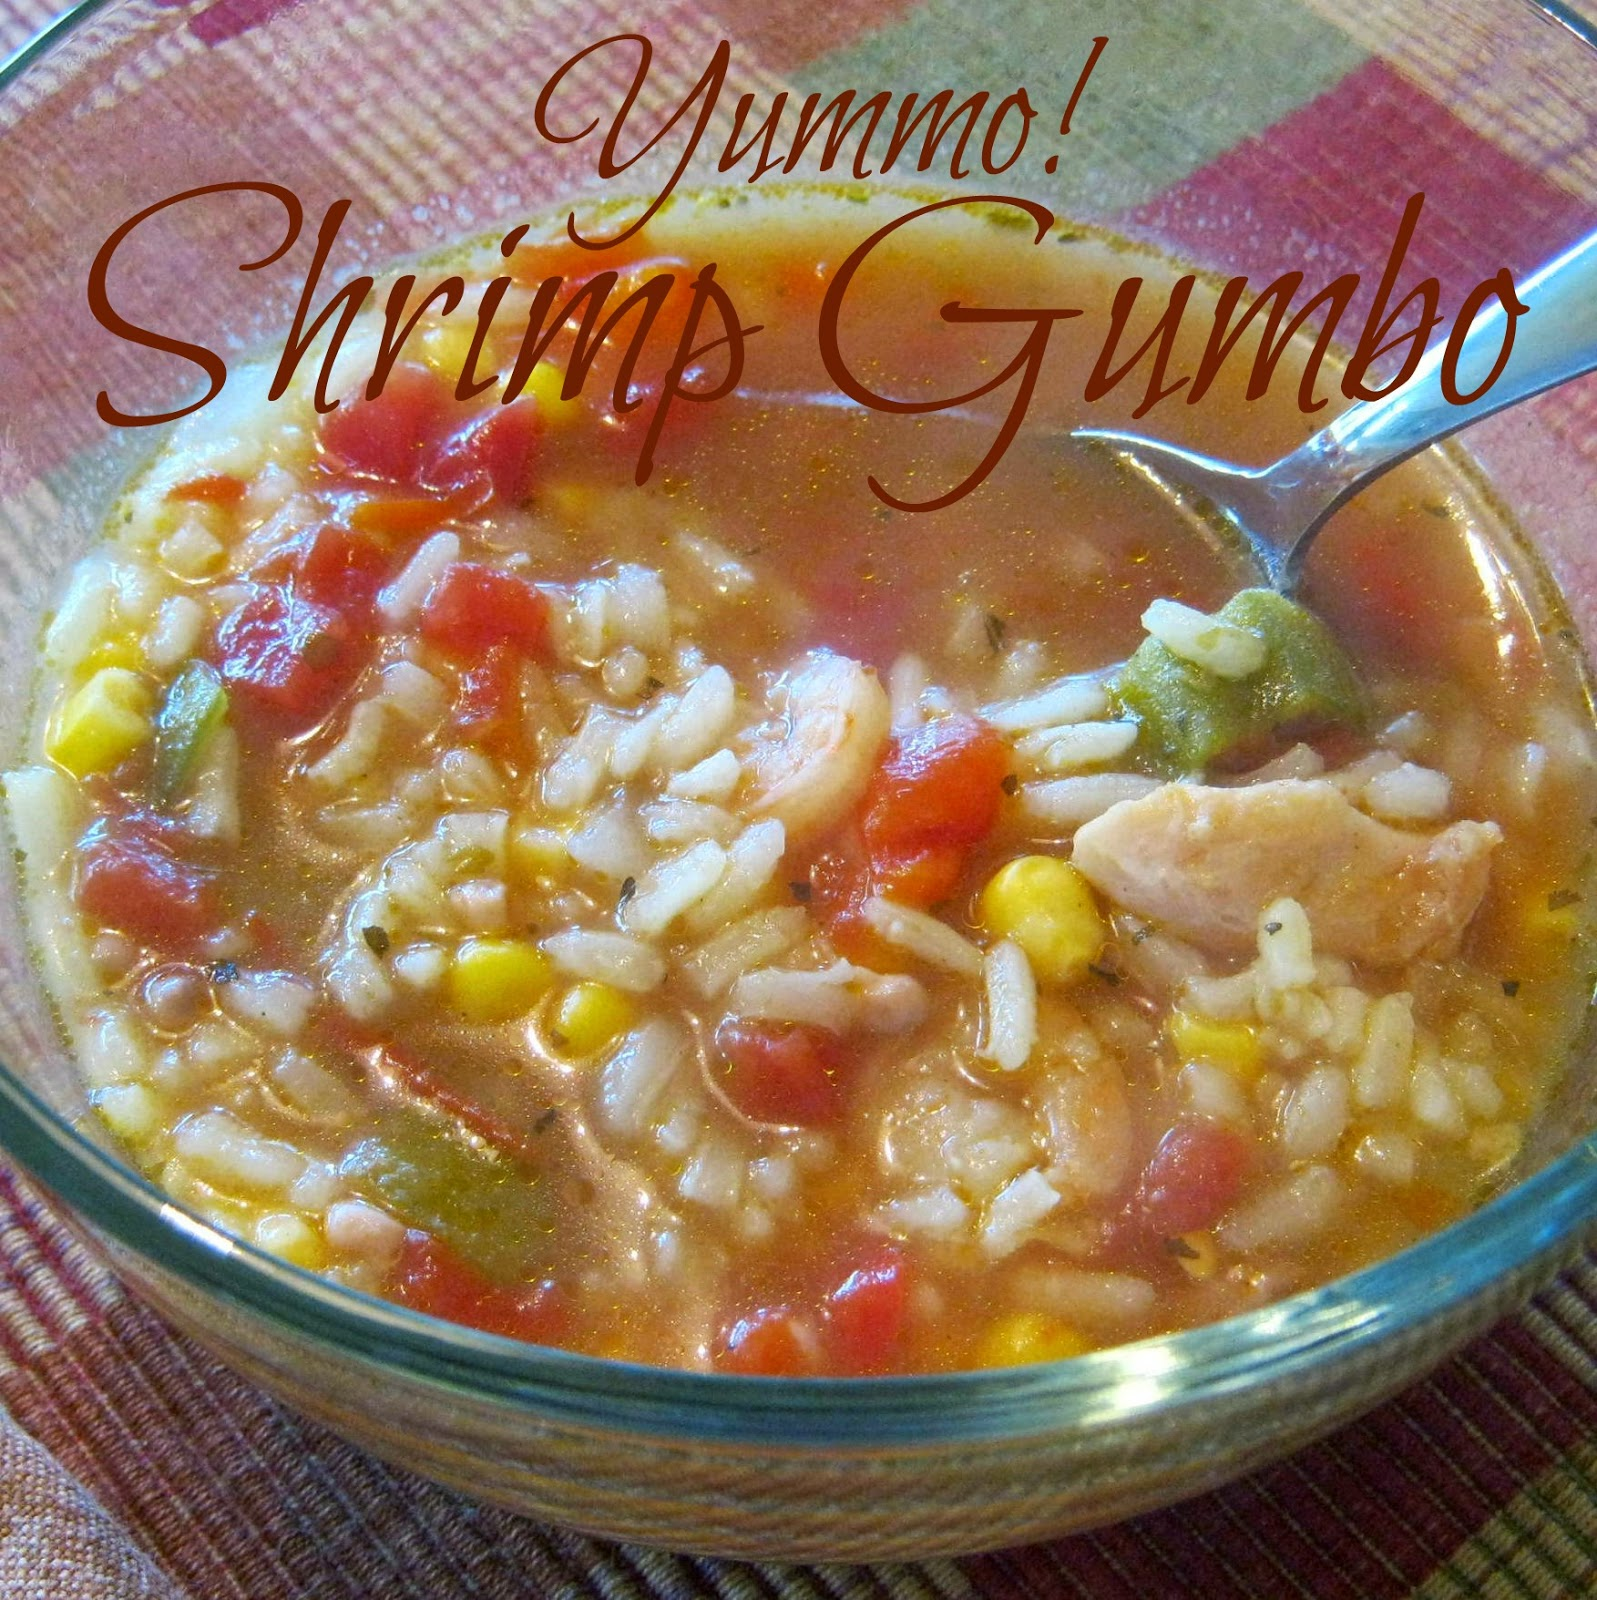 Shrimp Gumbo Recipe from Recipes for Real People